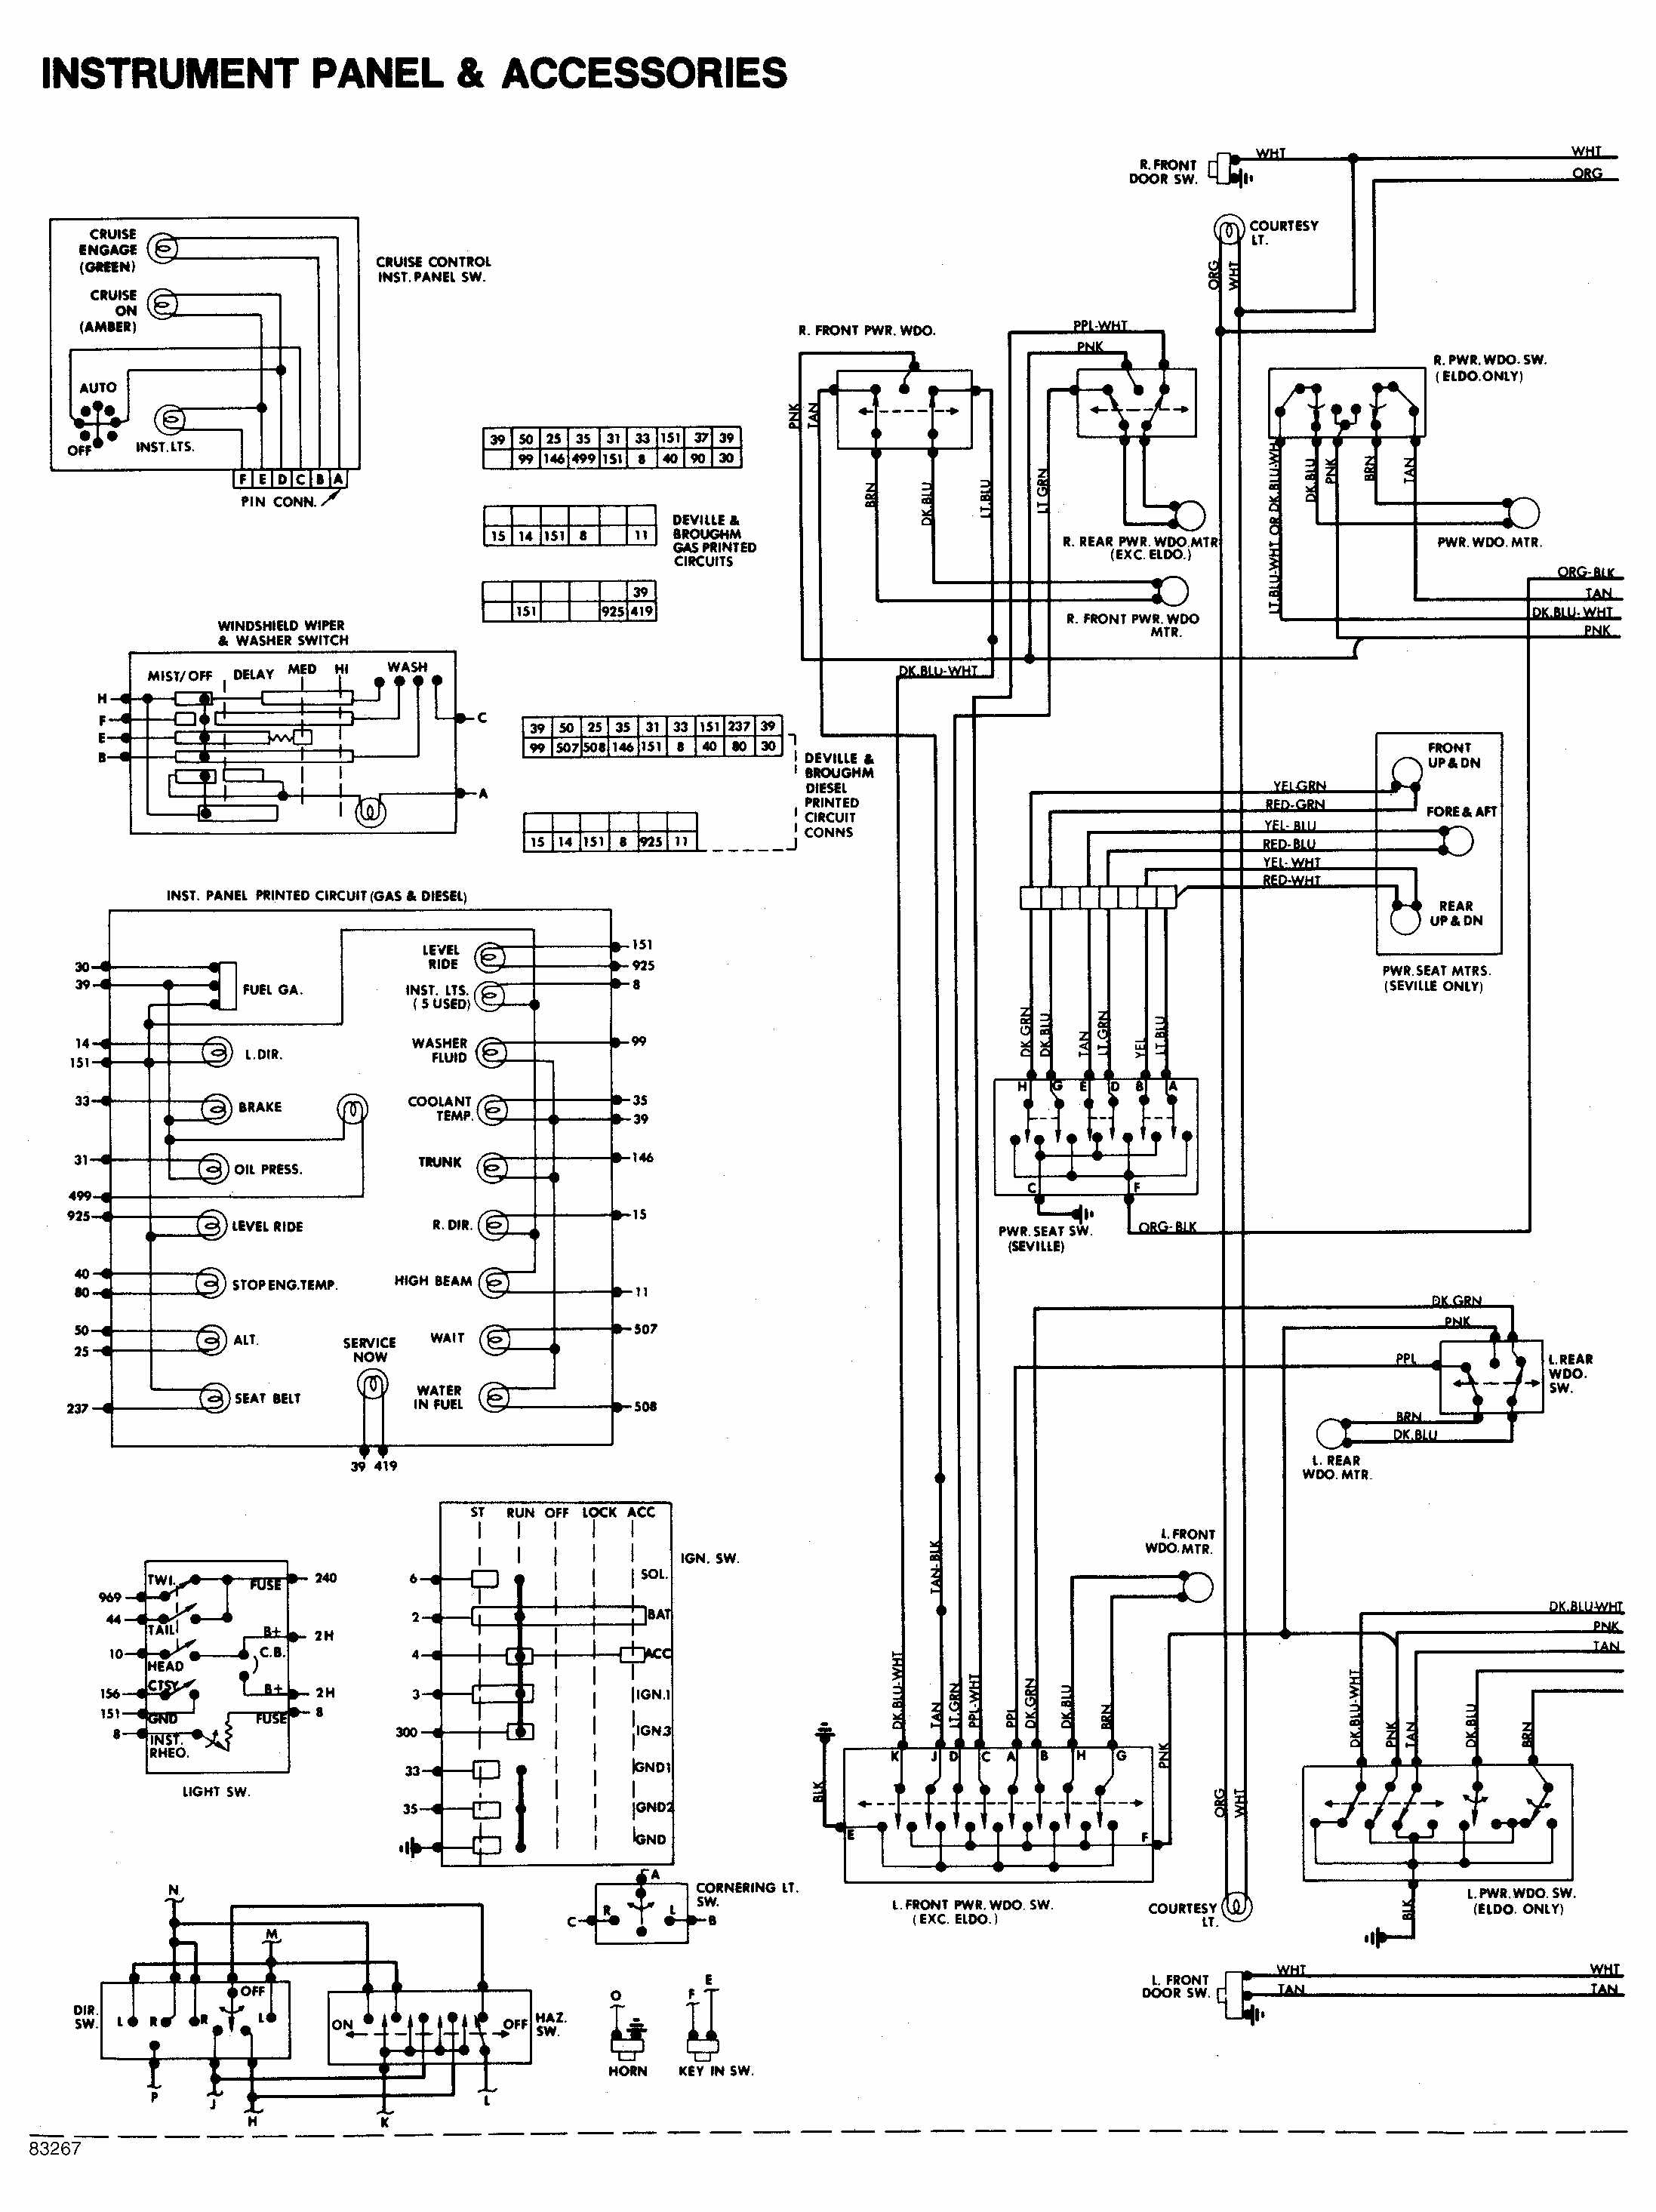 1992 Instrument Panel Wiring Diagrams Understanding Chevrolet Colors Diagram Also Chevy Cluster On Headlight